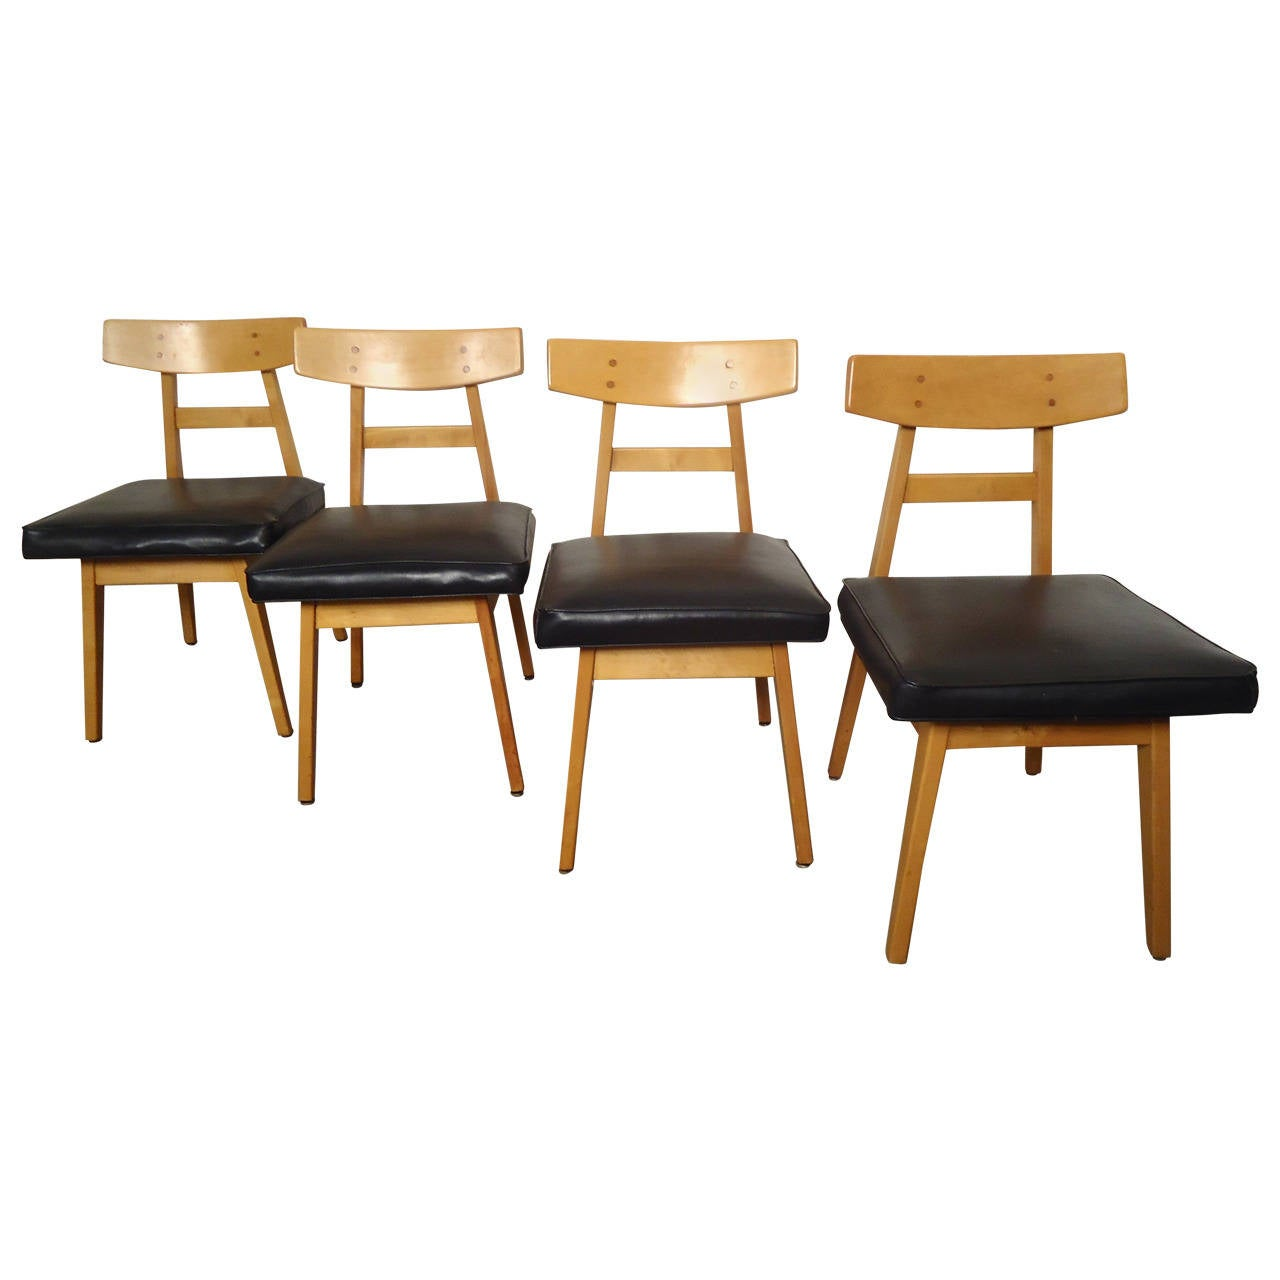 Set of jens risom dining chairs at 1stdibs - Jens risom dining chairs ...